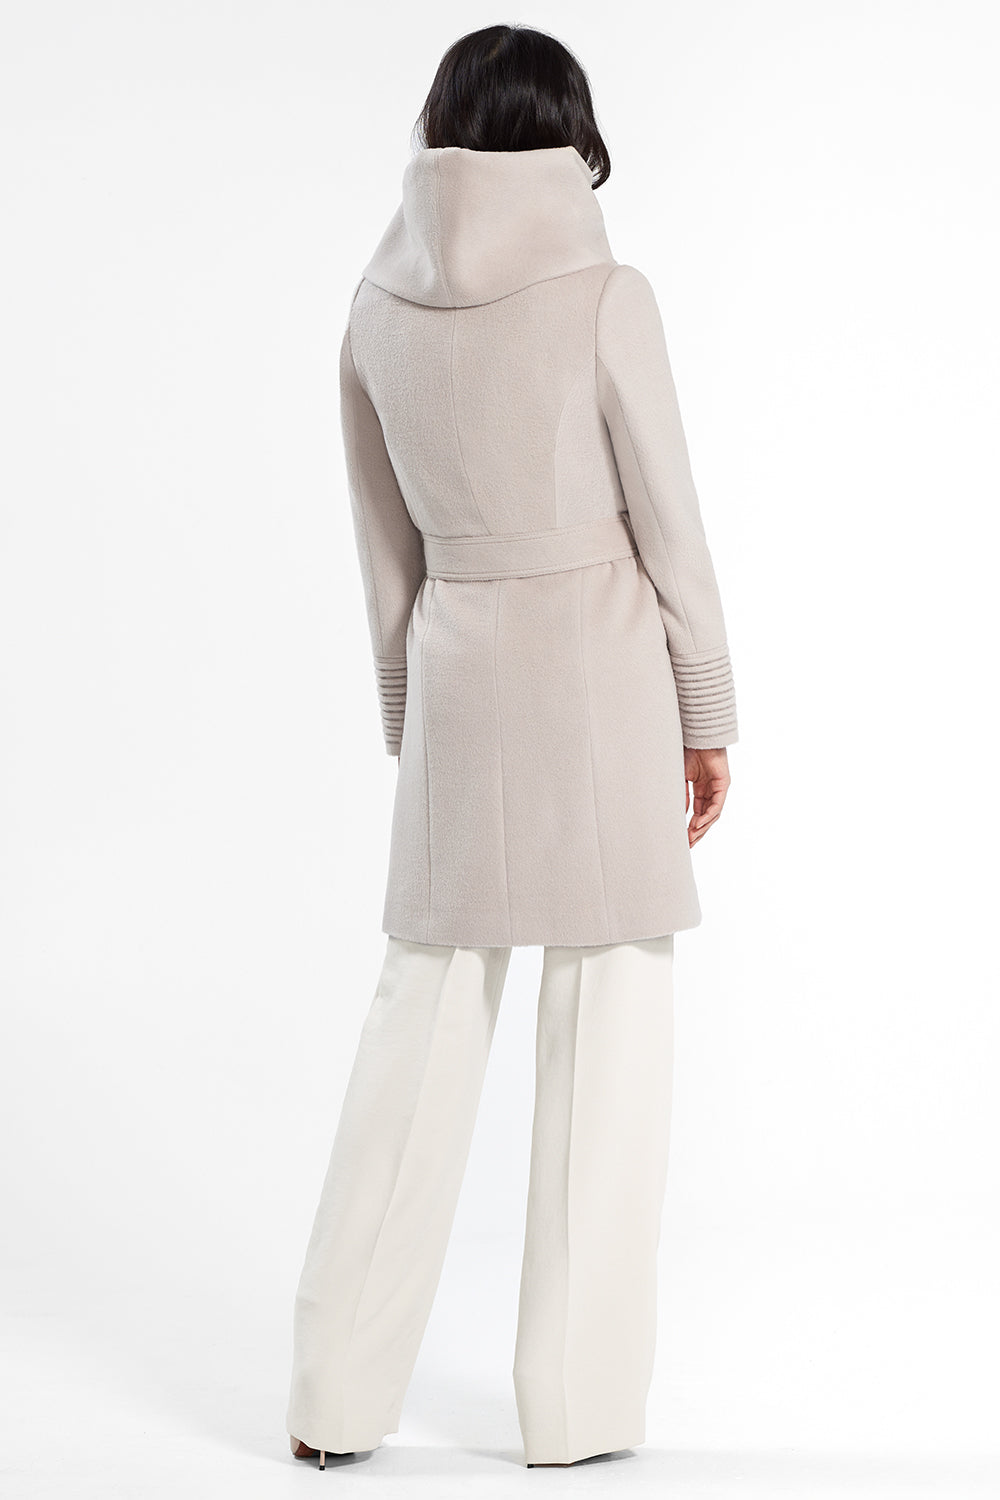 Sentaler Mid Length Hooded Wrap Coat featured in Baby Alpaca and available in Bleeker Beige. Seen from back.